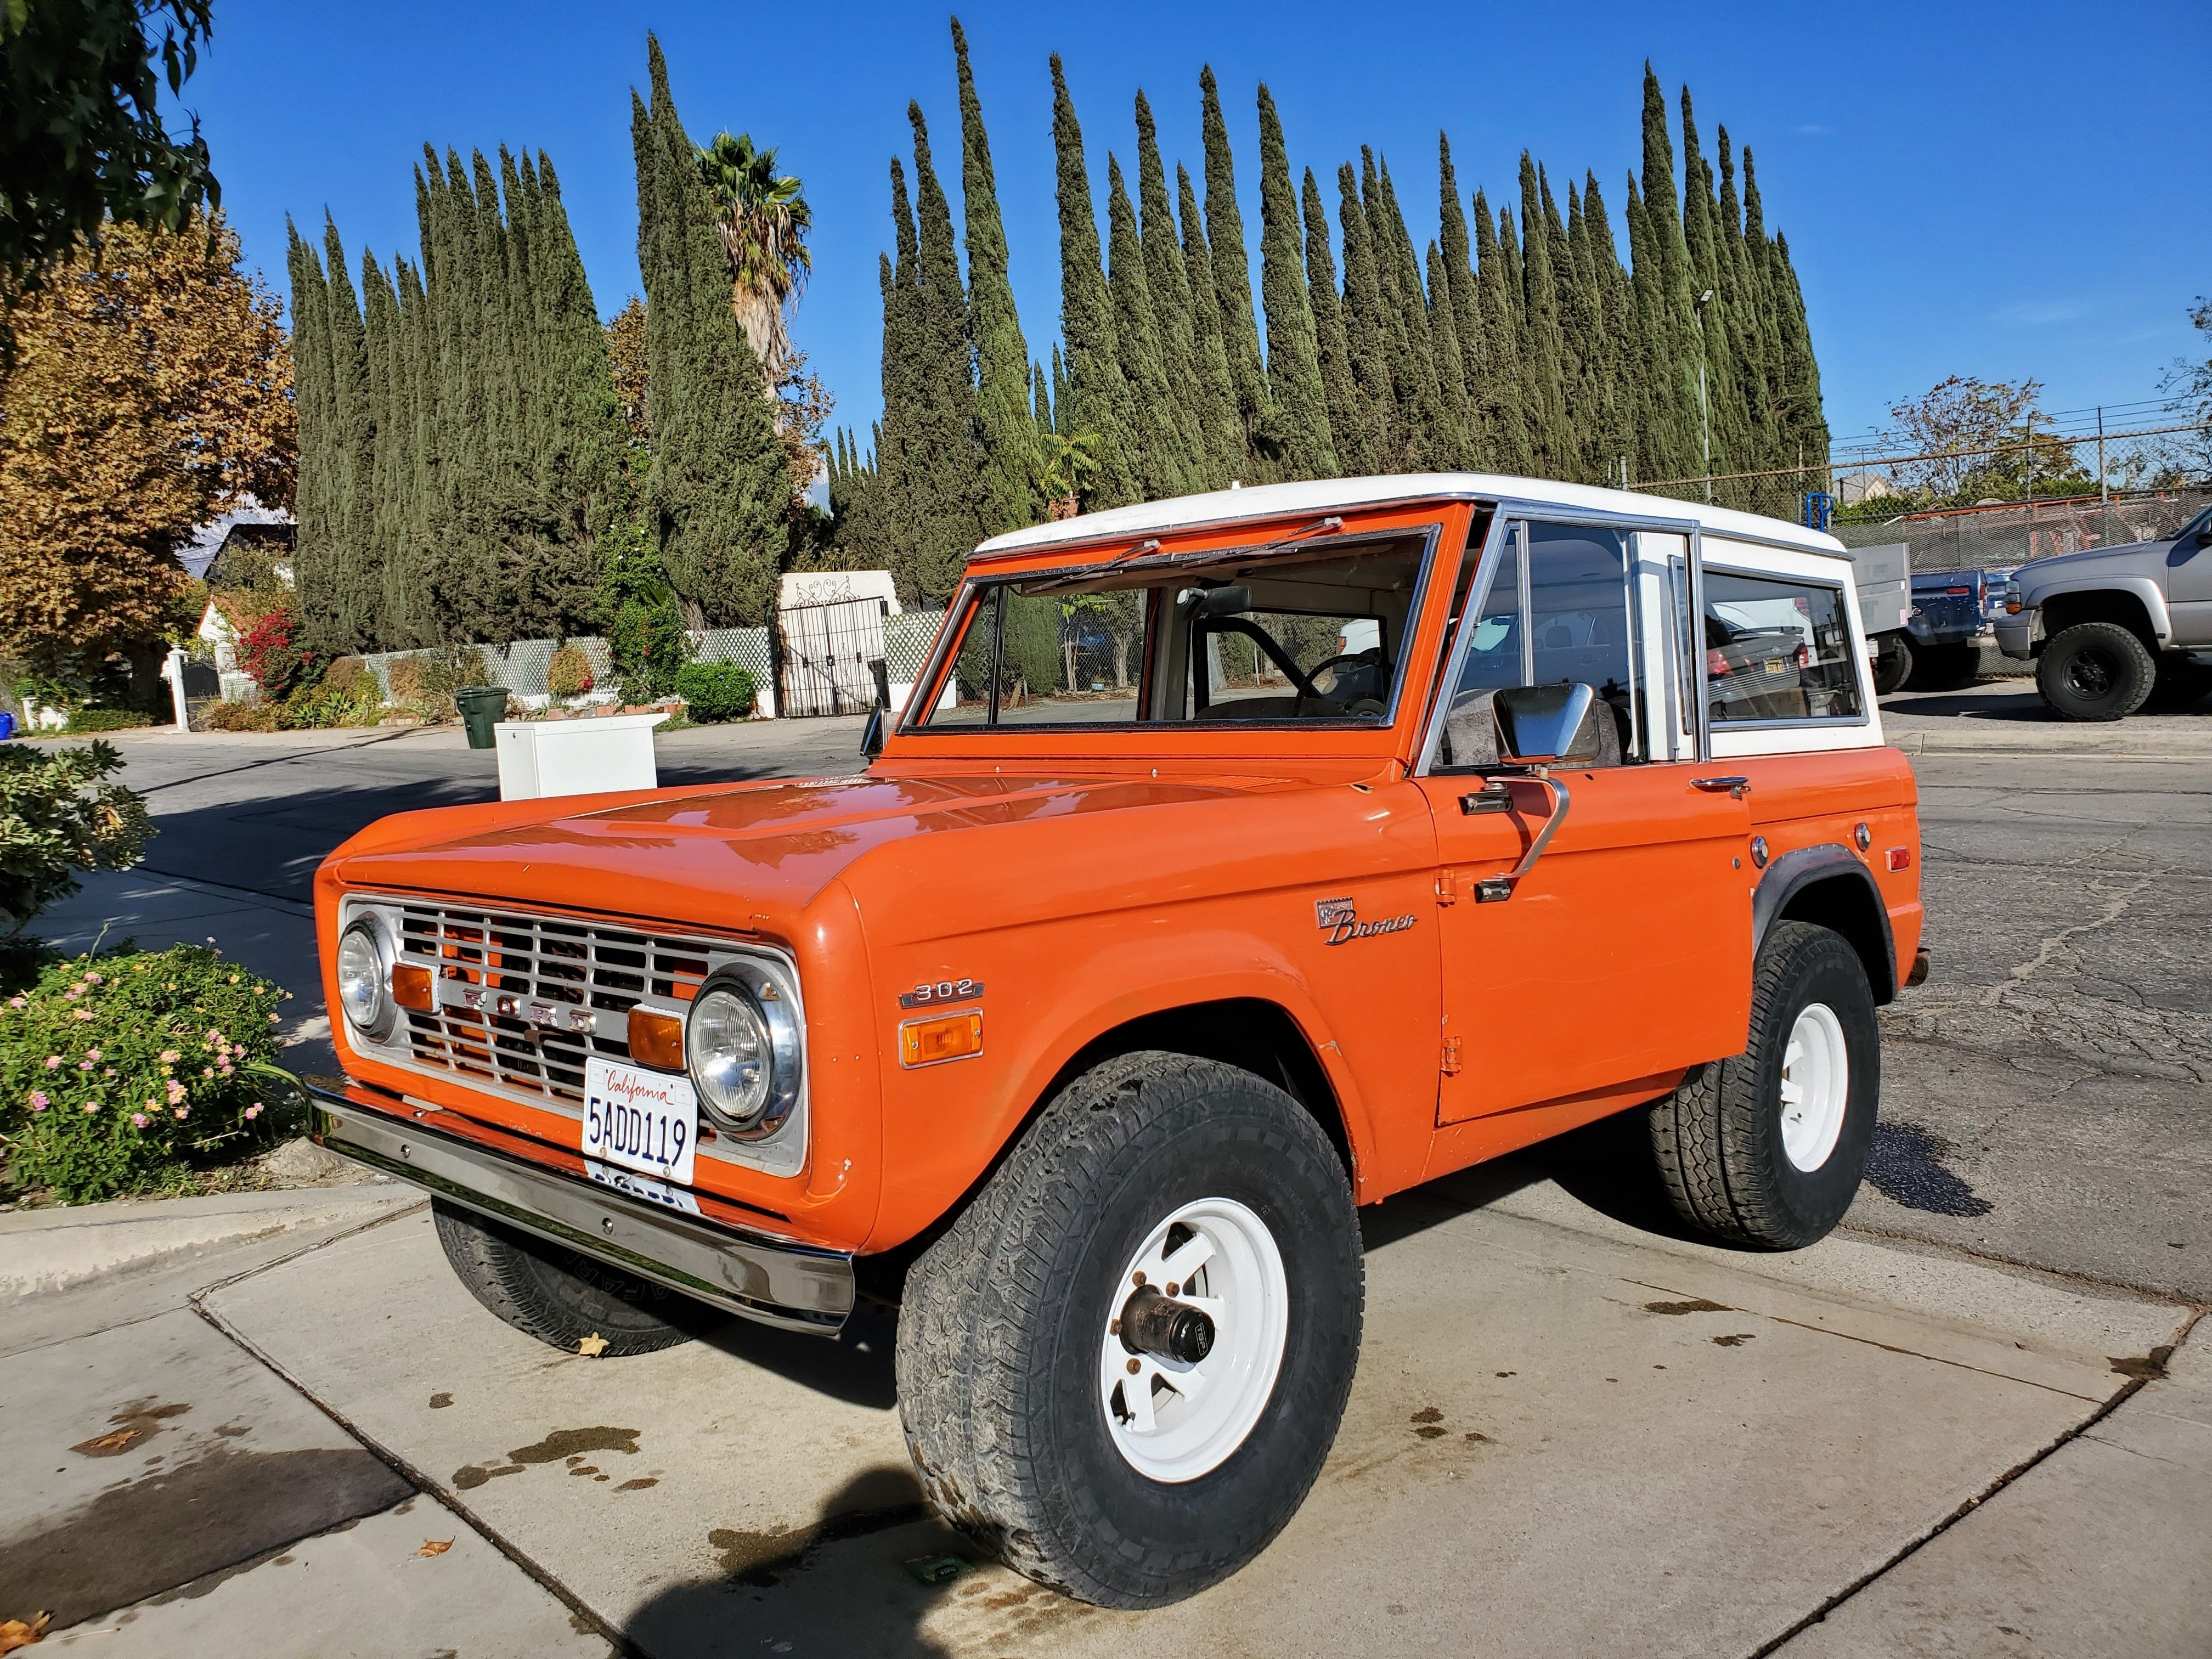 1970 Ford Bronco for sale in cucamonga, California 91730